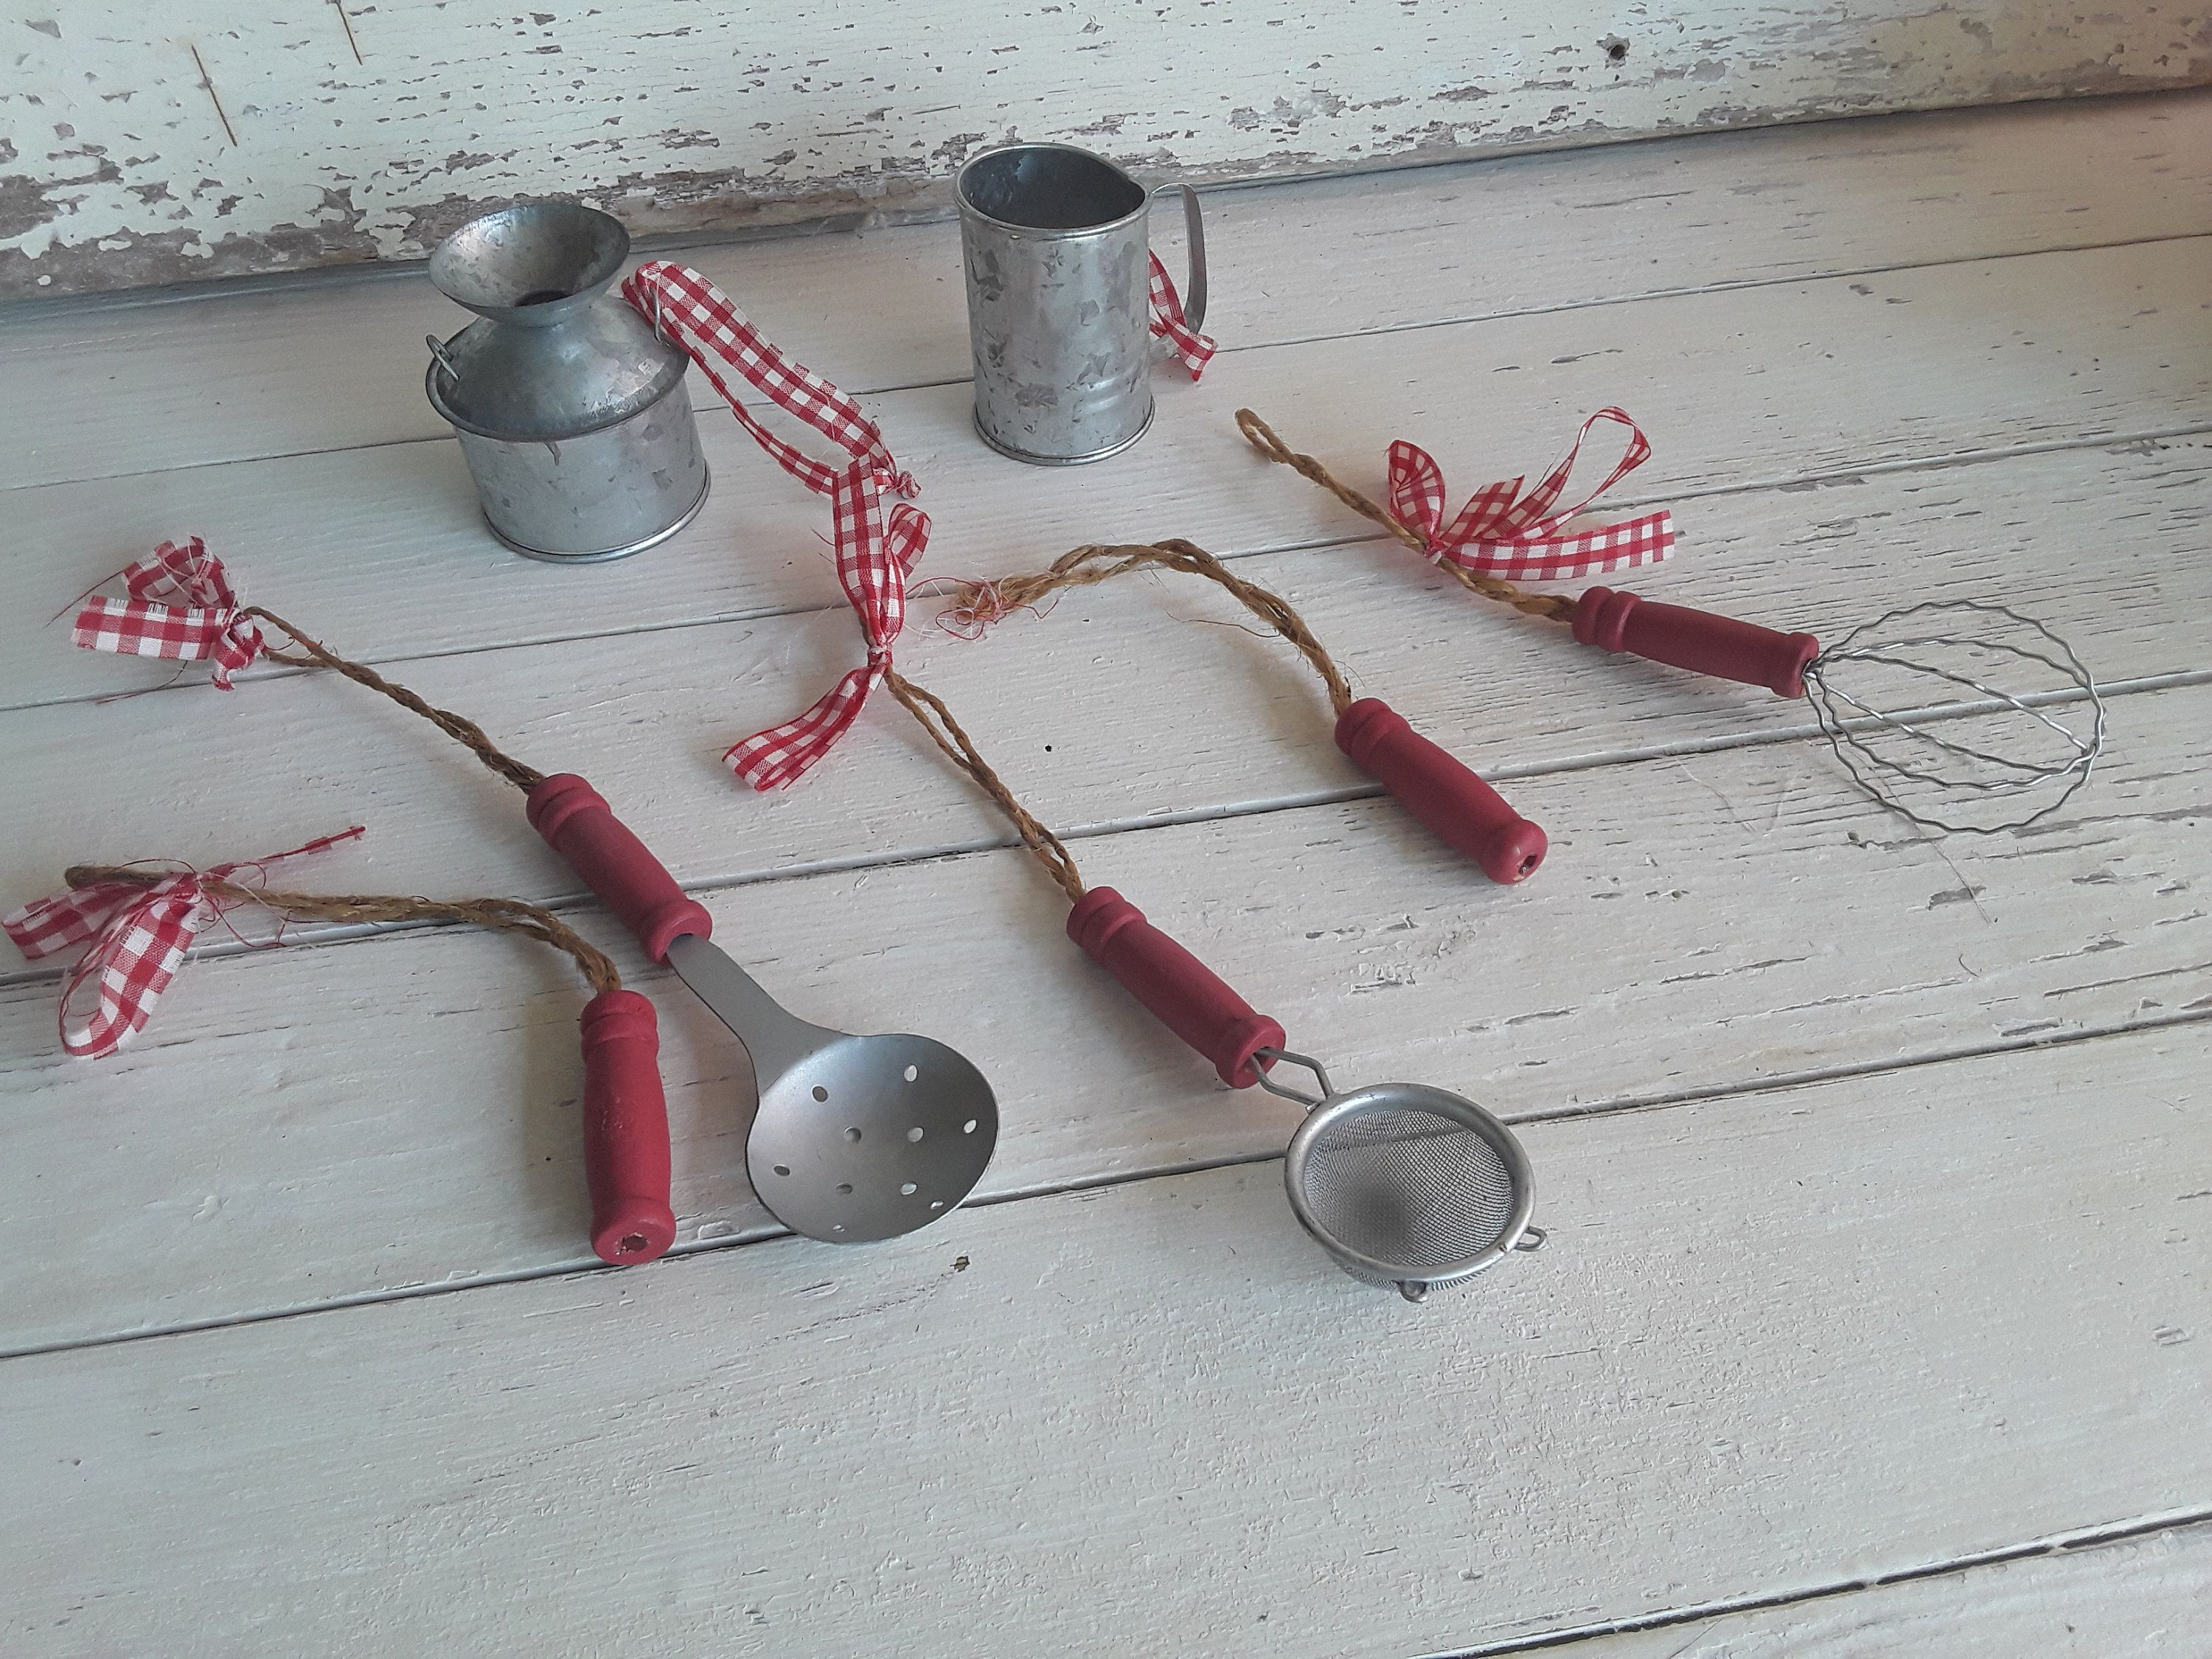 Vintage Christmas Miniature Kitchen Utensils, Kitchen Christmas Tree Ornaments, County Christmas Tree, Farmhouse Christmas Decor #miniaturekitchen